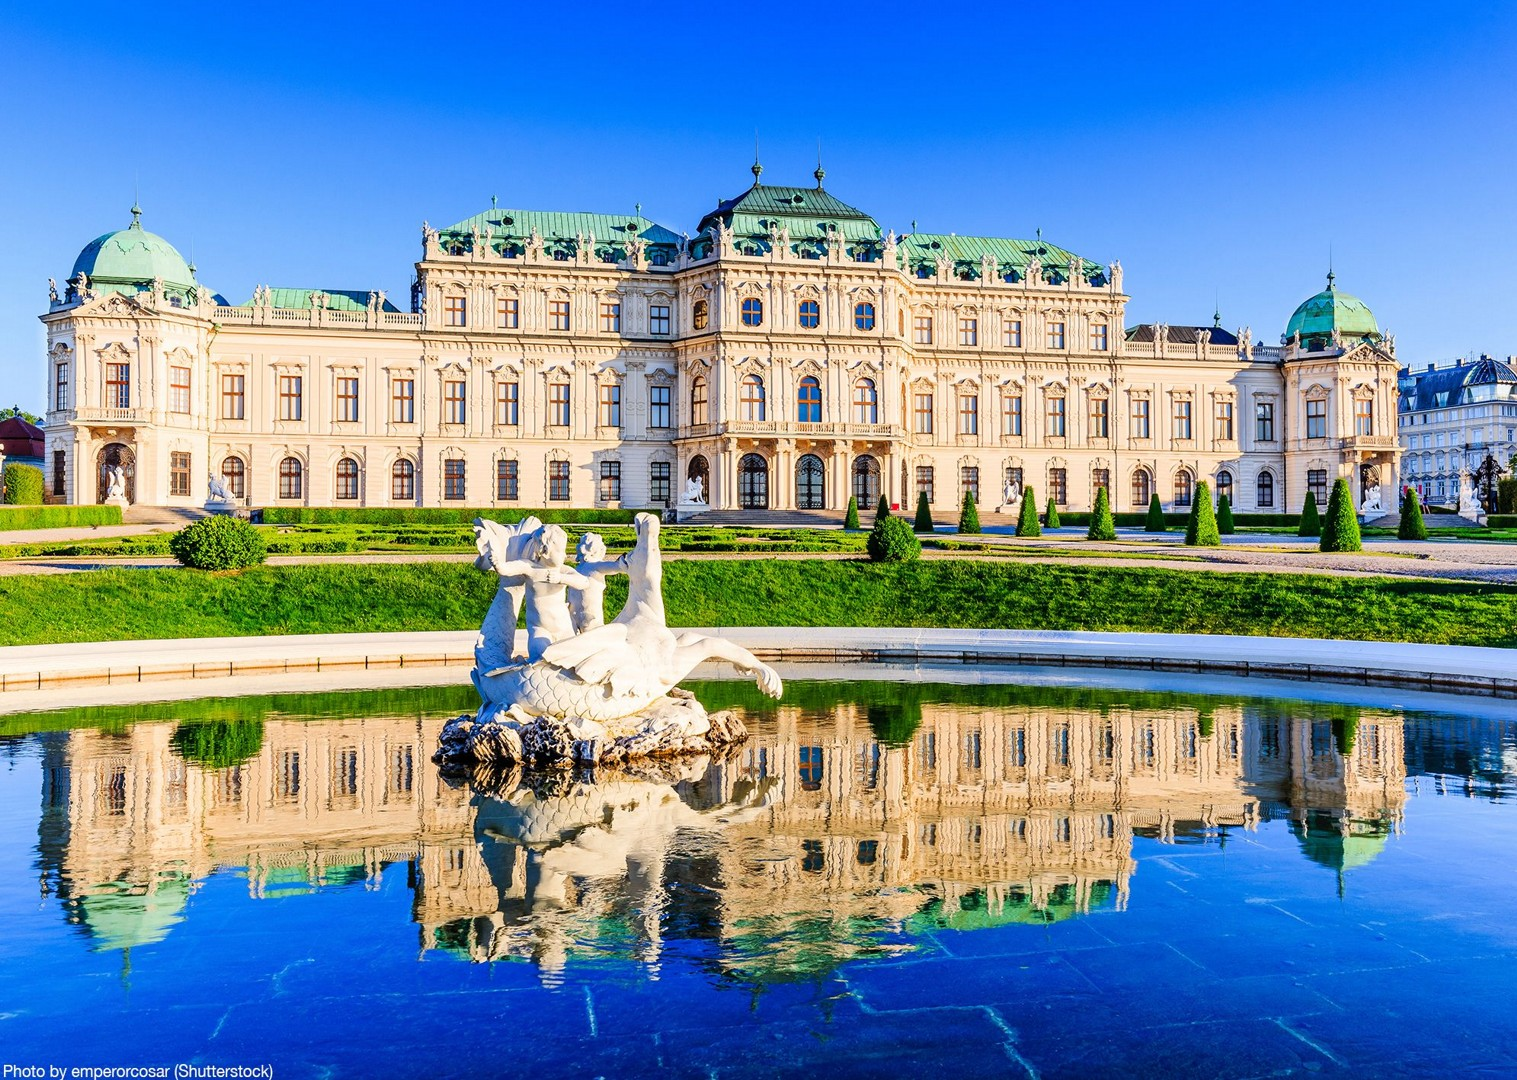 hofburg-palace-visit-cycling-holiday-vienna-austria.jpg - Germany and Austria - The Danube Cyclepath (10 Days) - Self-Guided Leisure Cycling Holiday - Leisure Cycling